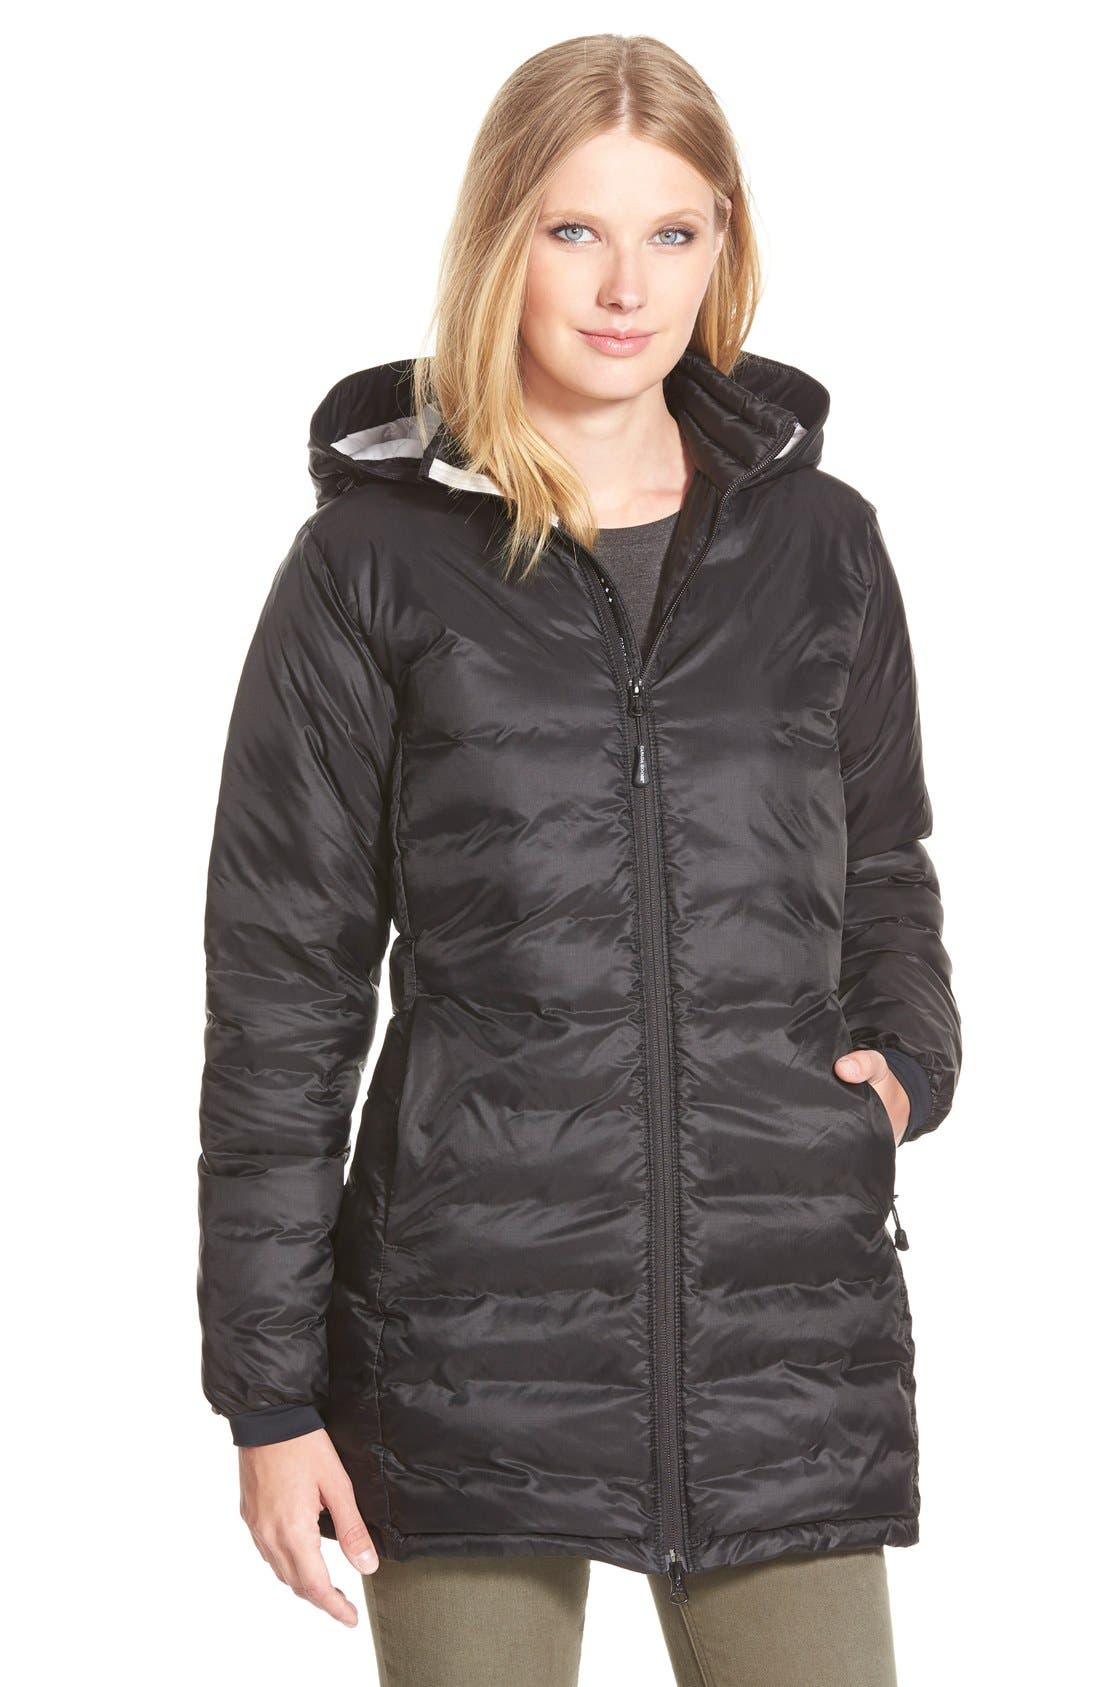 CANADA GOOSE, 'Camp' Slim Fit Hooded Packable Down Jacket, Main thumbnail 1, color, BLACK